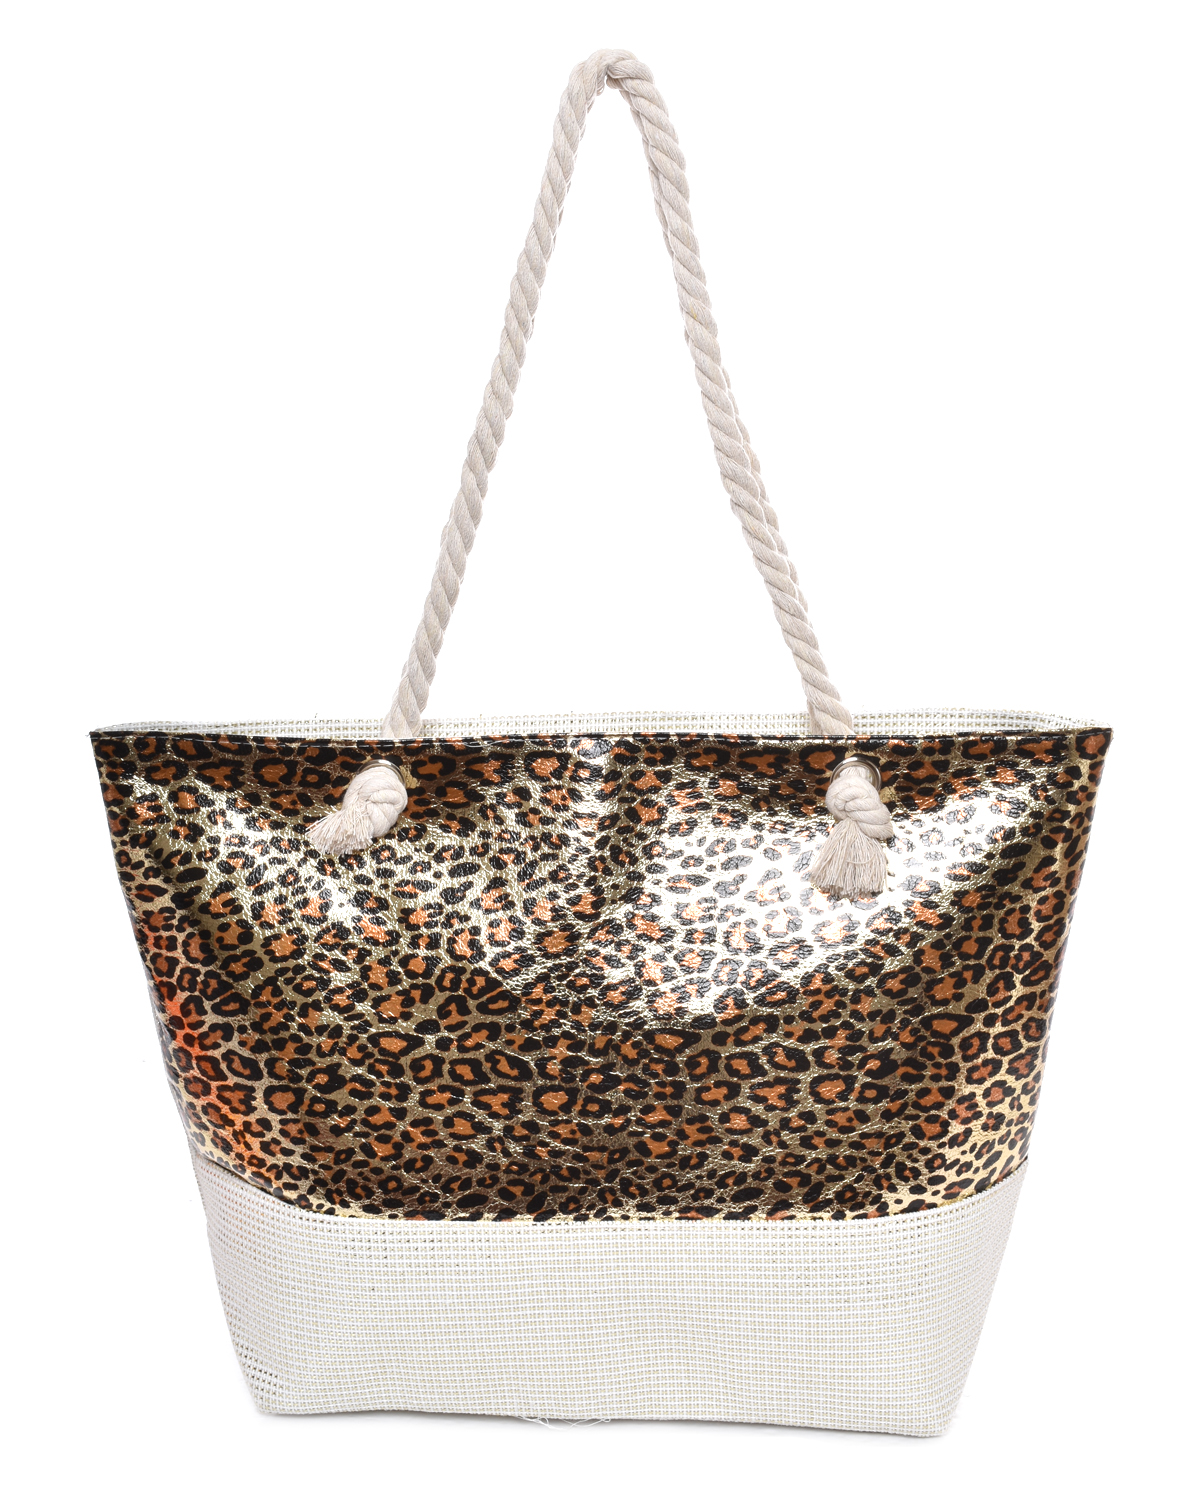 AO8002(GD)-wholesale-handbag-tote-bag-fabric-animal-leopard-rope-handle-fabric-texture-pvc-polyester(0).jpg